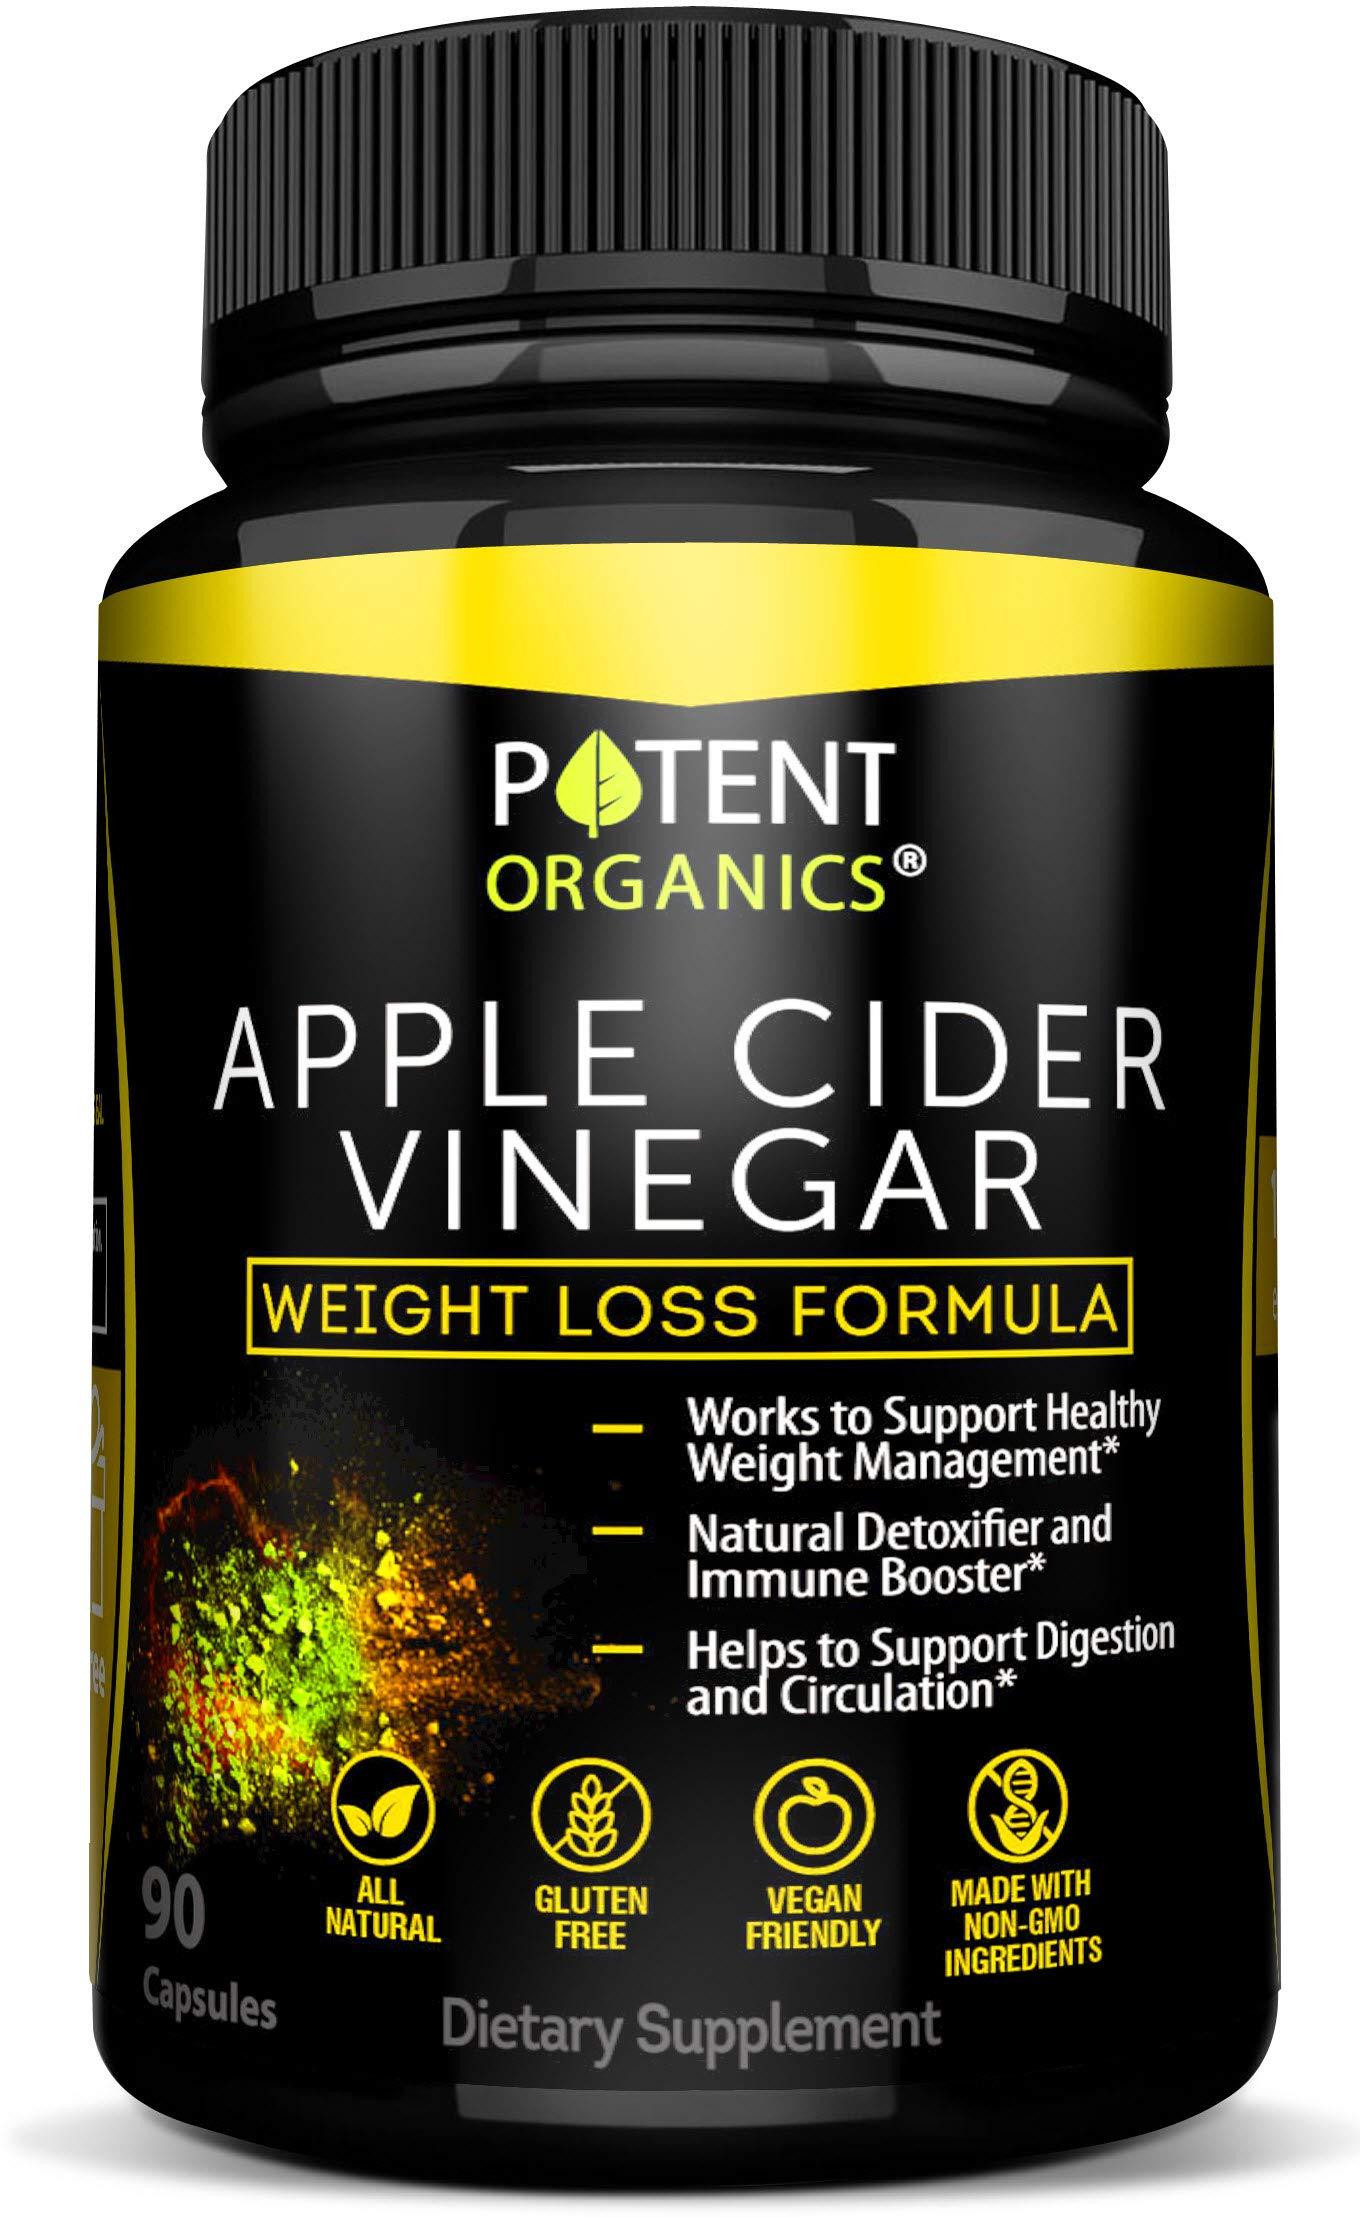 100 Organic Apple Cider Vinegar 90 Capsules For Healthy Diet Weight Loss Pure Raw Vegan And Non Gmo Helps Digestion Made In Usa Add To